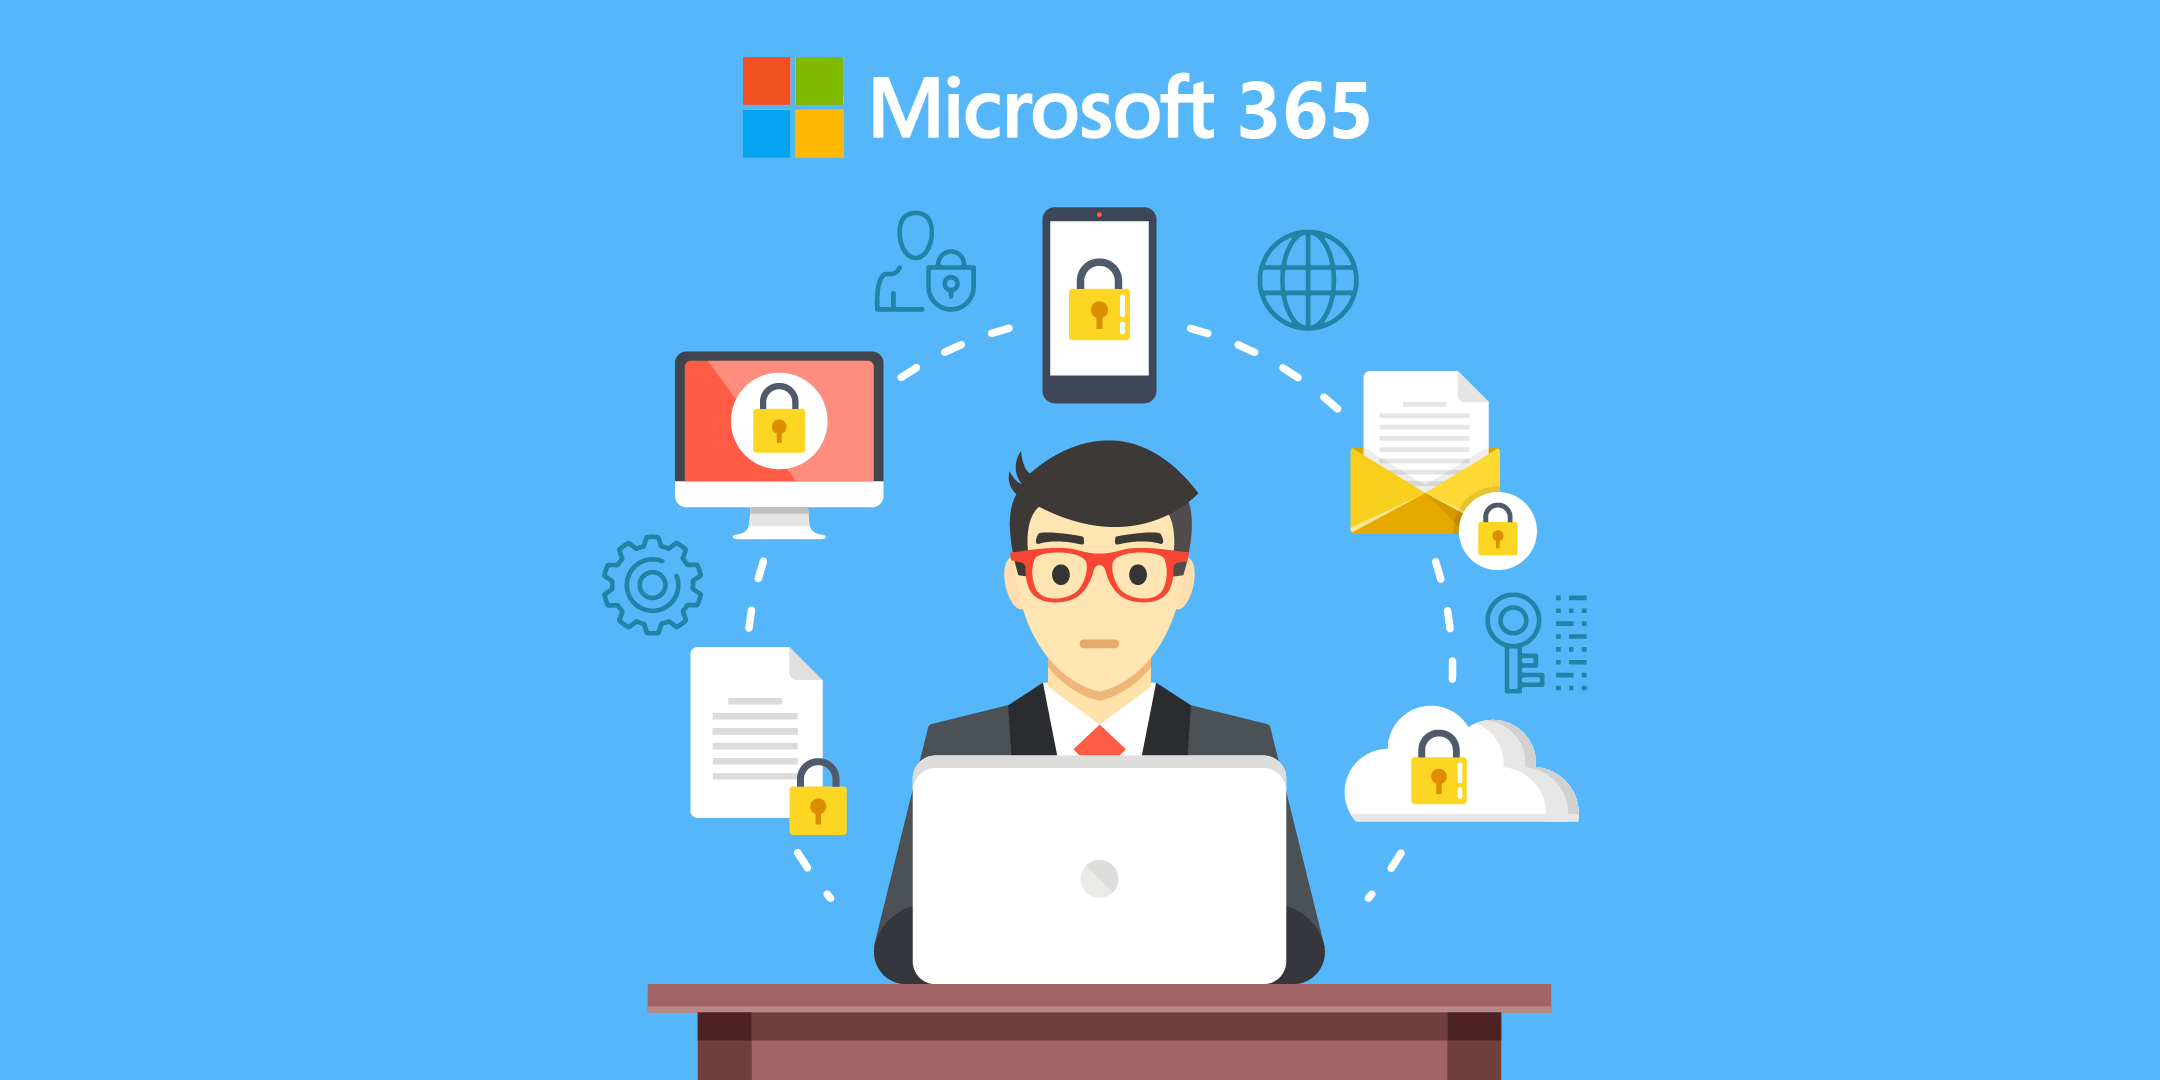 8 features of Microsoft 365 you might not know about